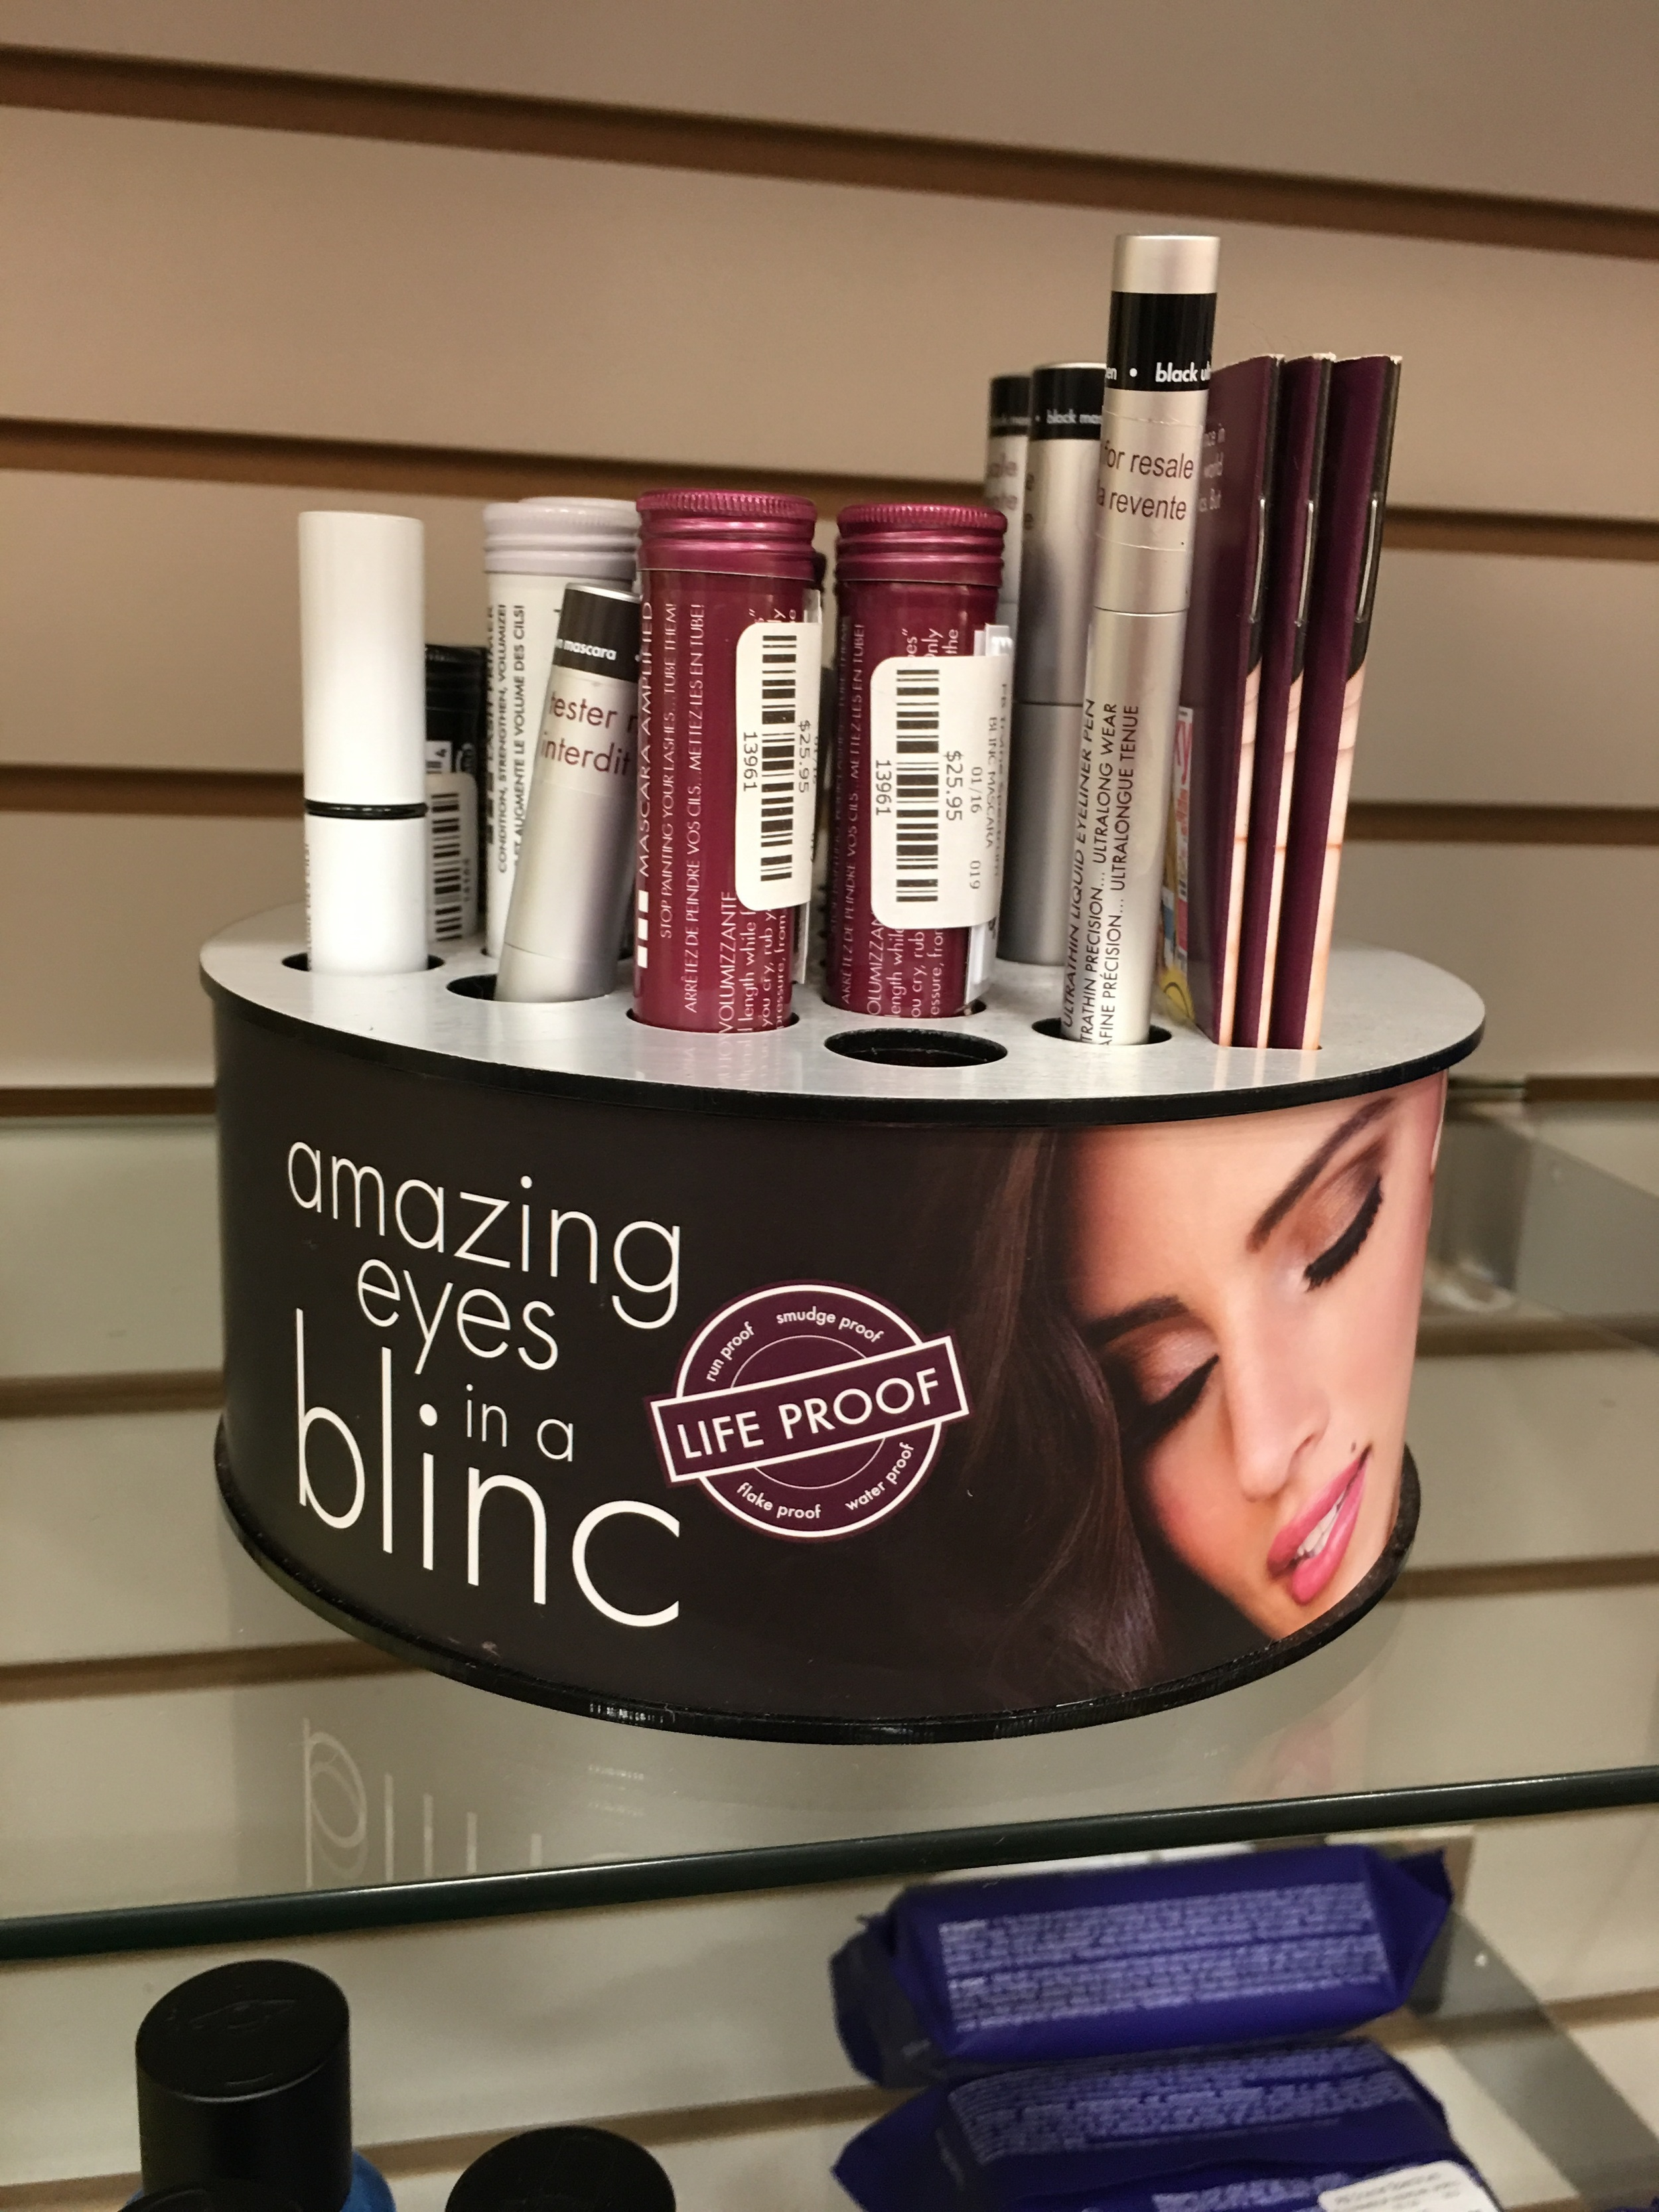 Blinc mascaras at the Planet Beauty